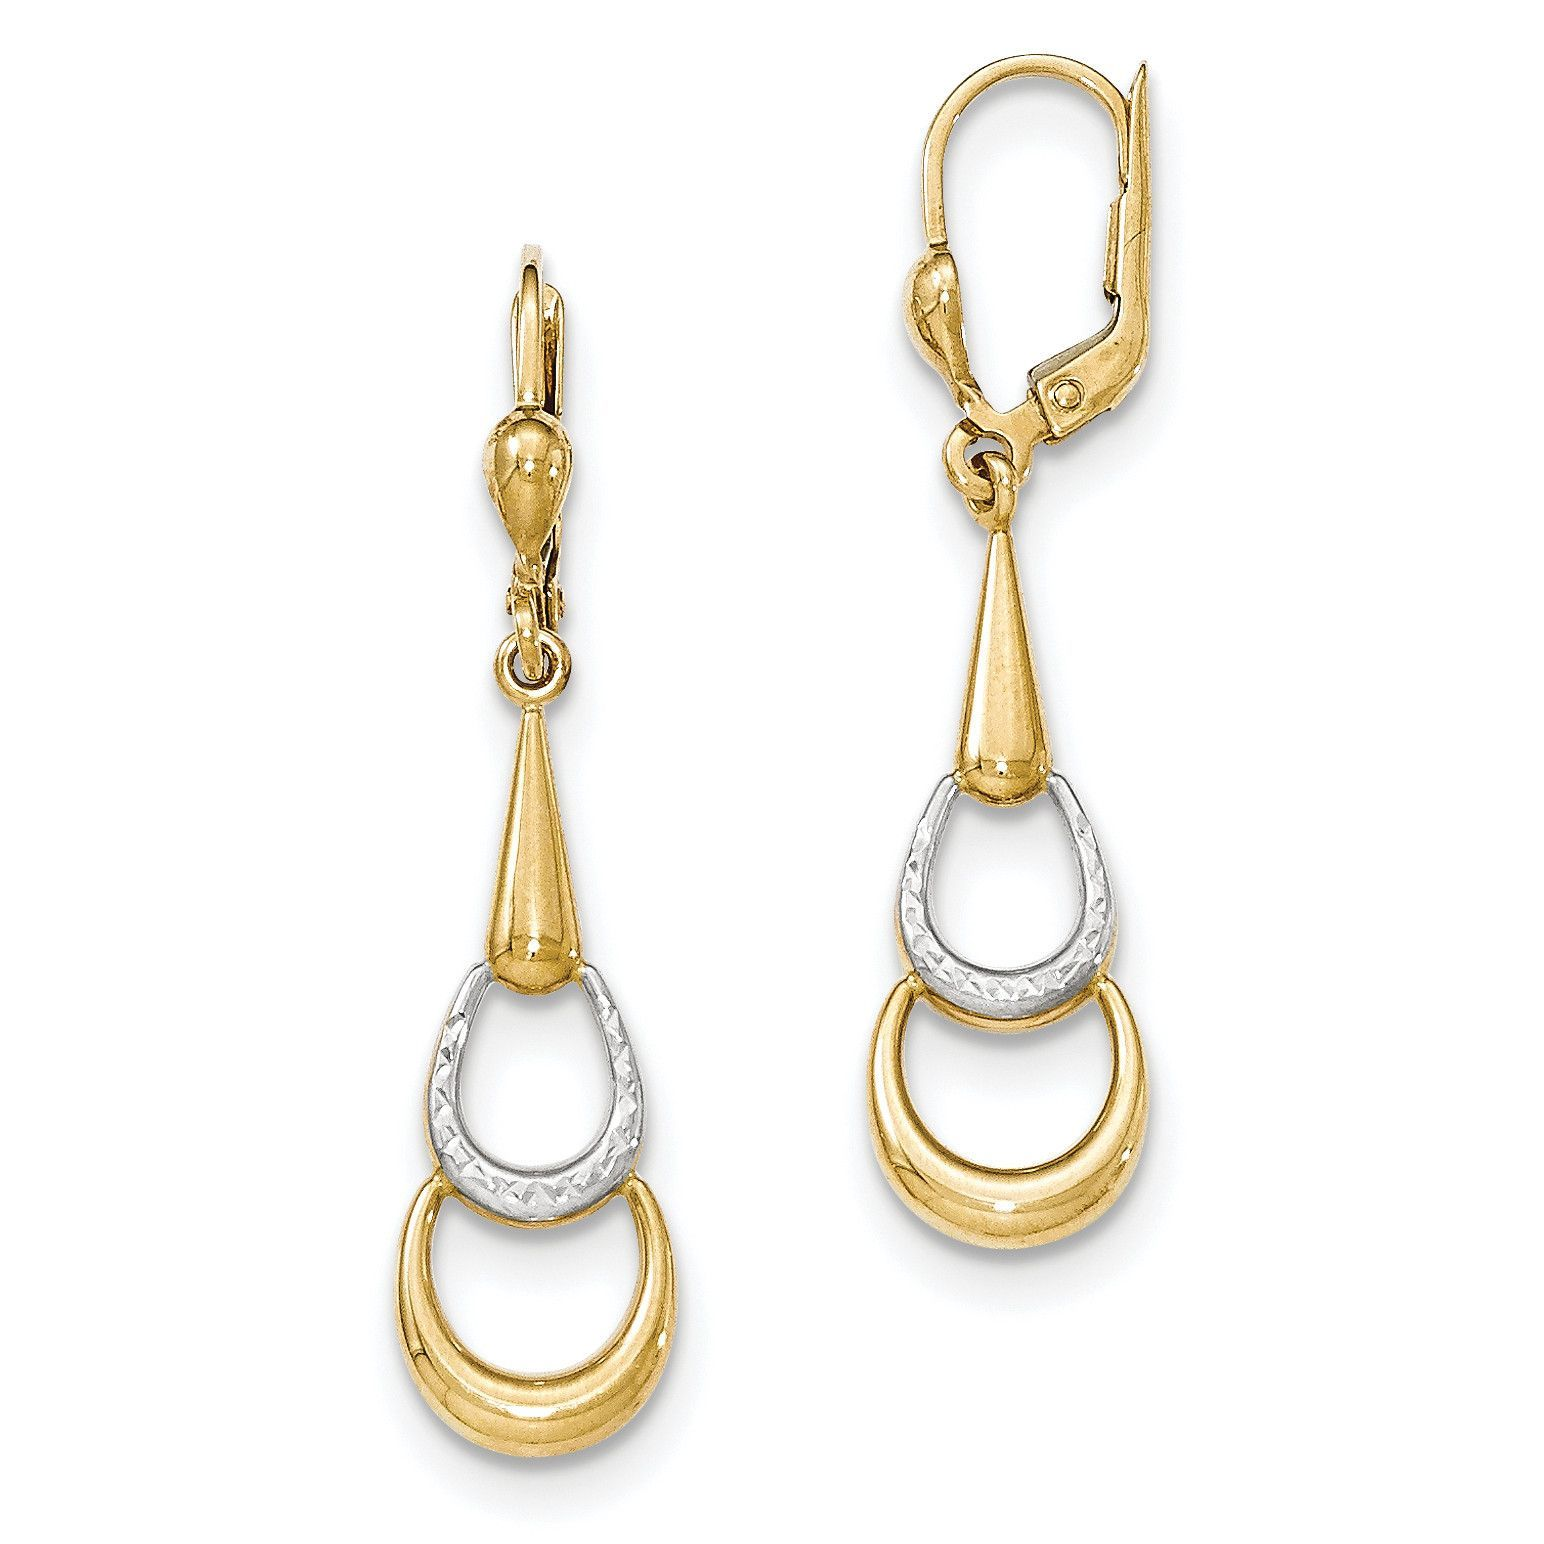 Real 14kt Two-Tone Polished Dangle Leverback Earrings